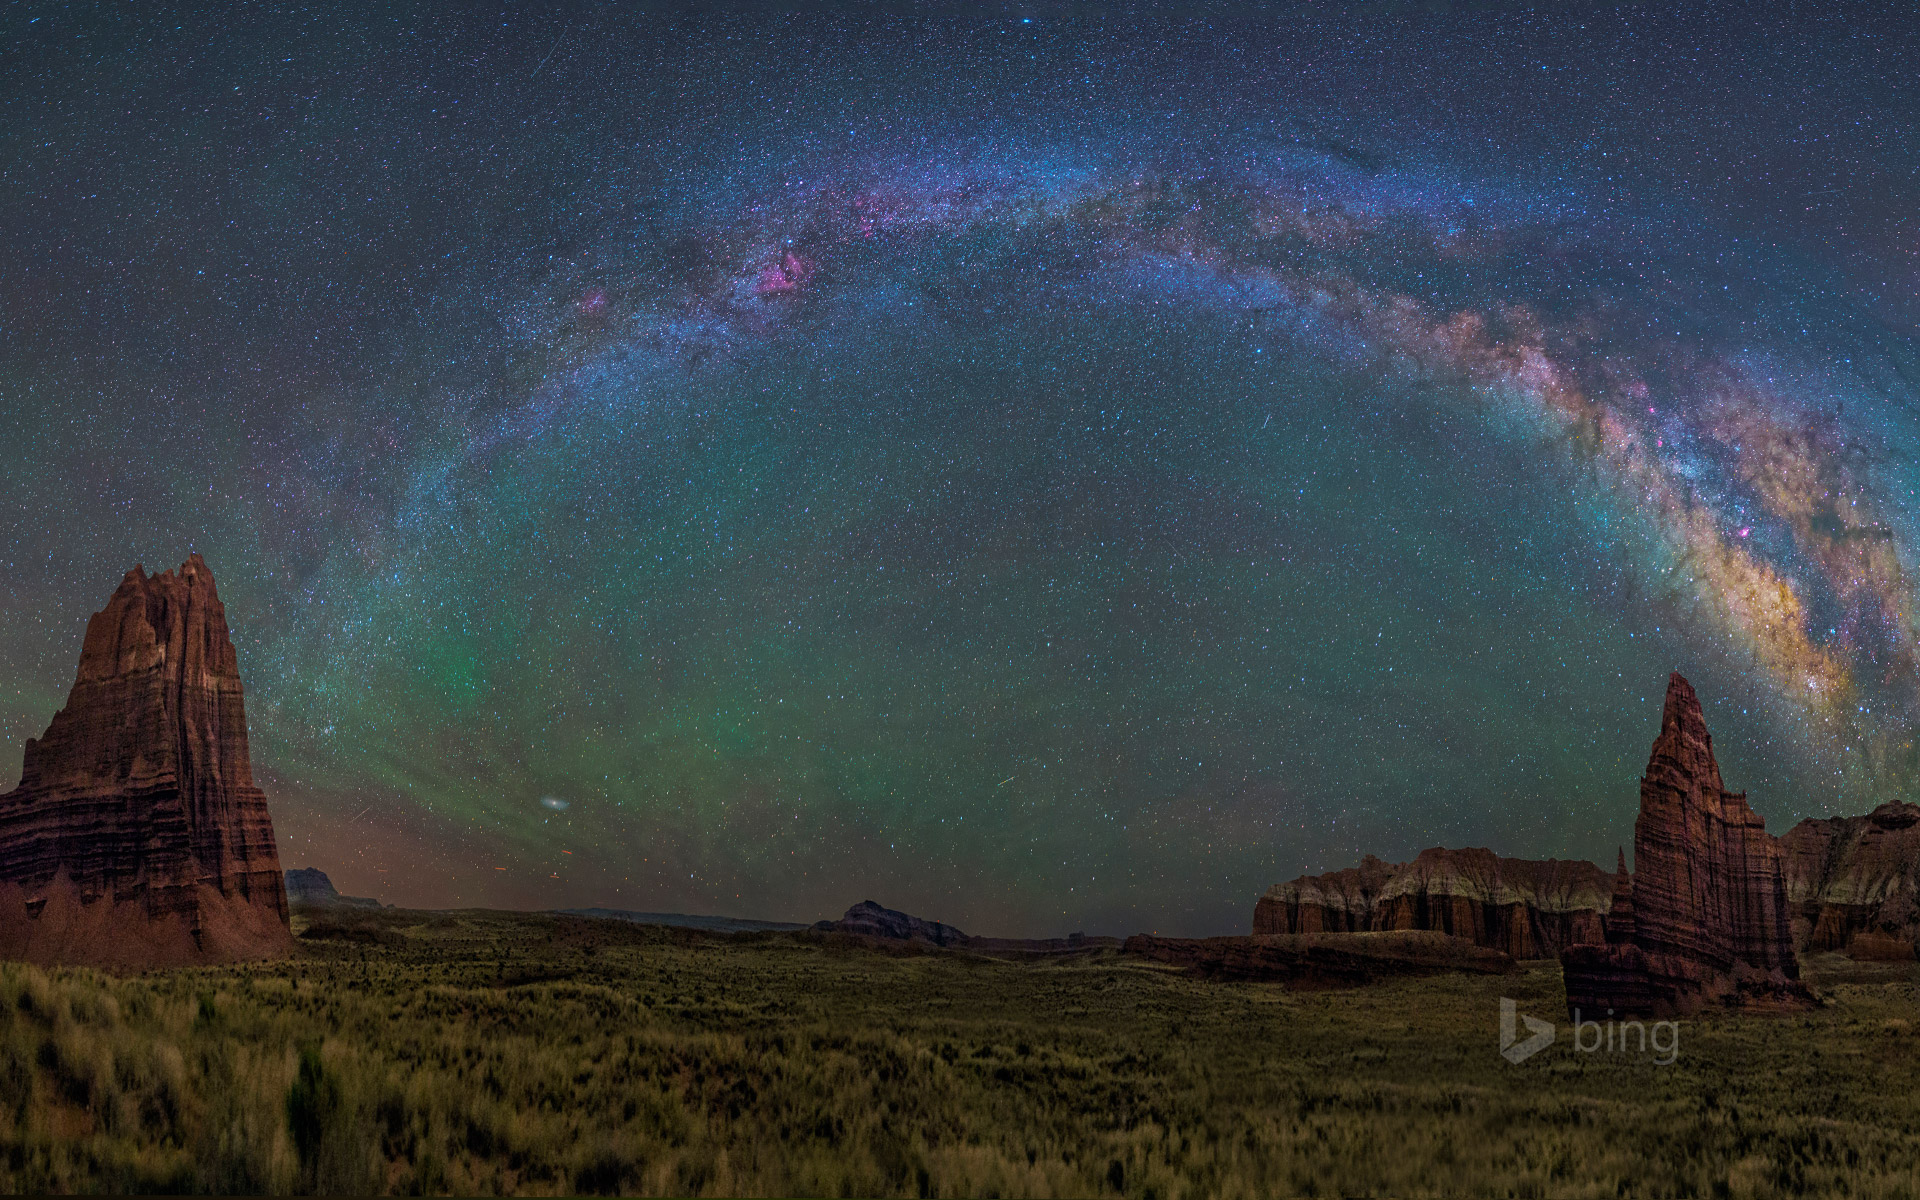 The Milky Way over Capitol Reef National Park in Utah